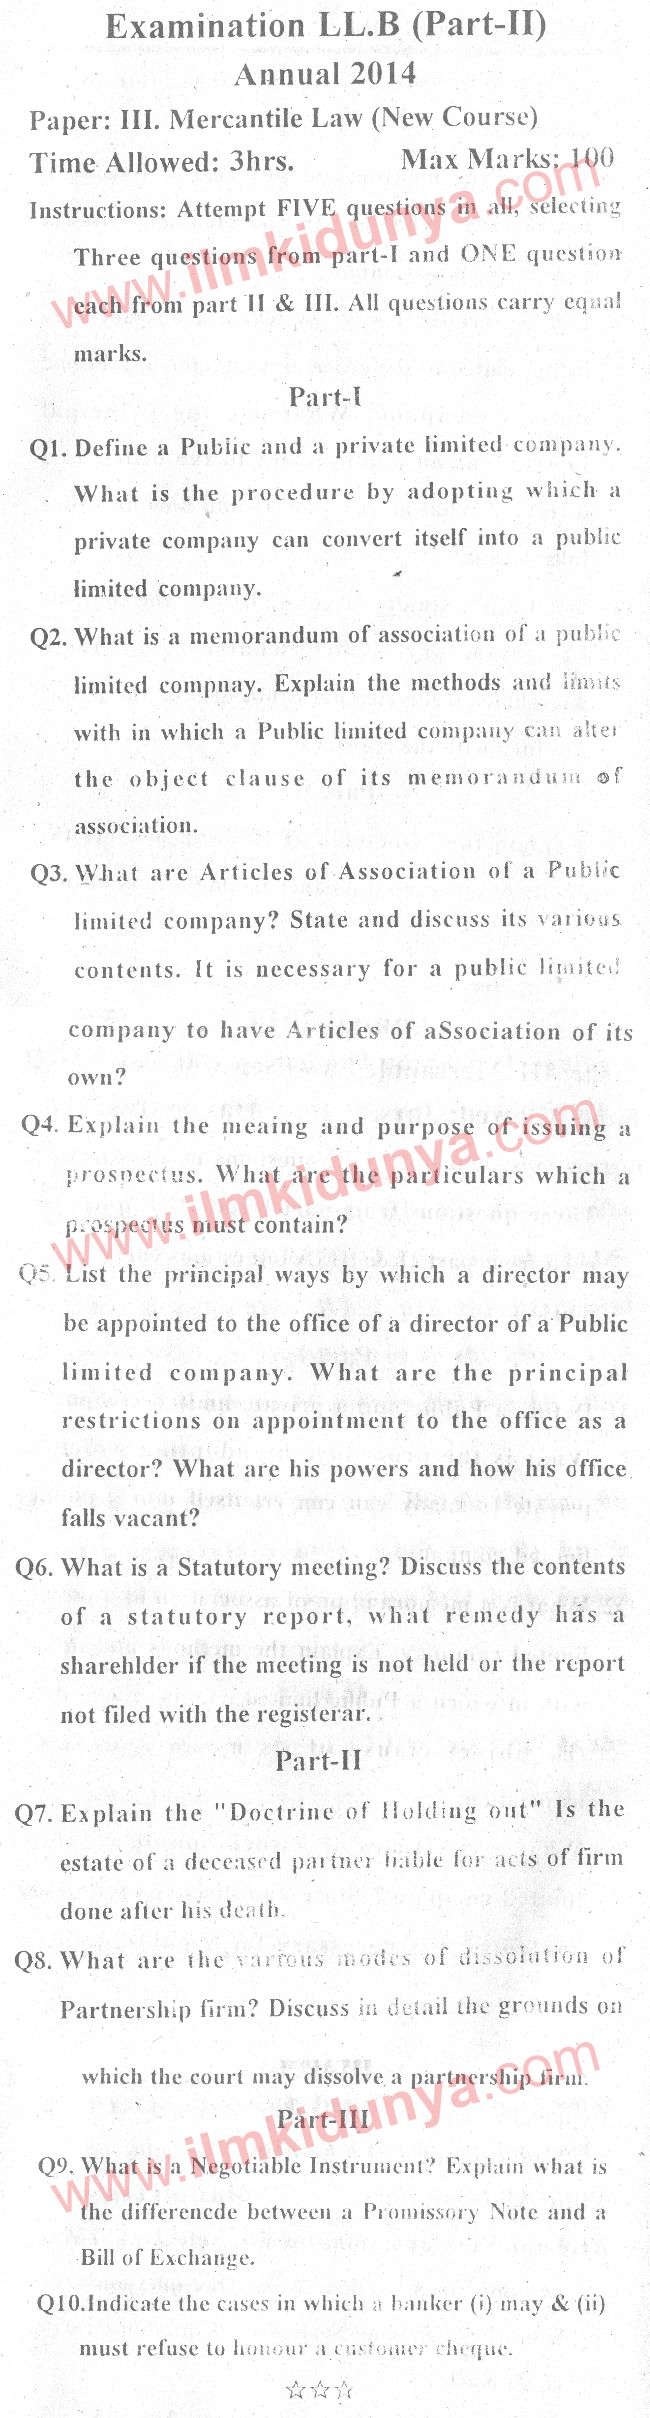 past papers 2014 llb part 2 mercantile company law paper 3 new course rh ilmkidunya com Custom Law Law of Jersey